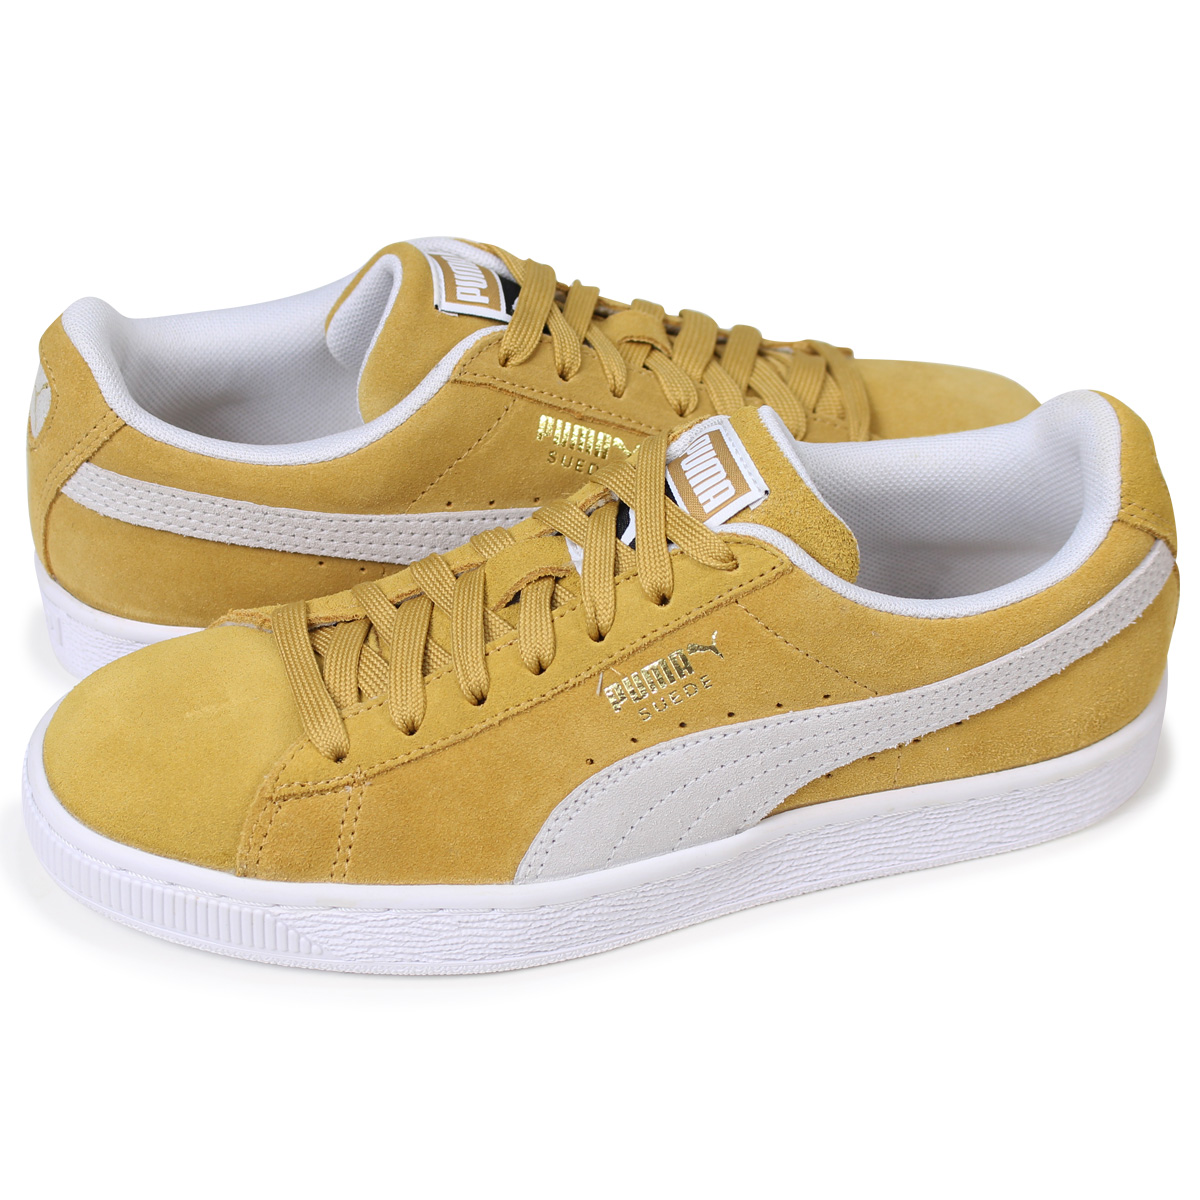 uk availability 3ceee 810e1 PUMA SUEDE CLASSIC Puma suede classical music sneakers men gap Dis  365,347-10 yellow [load planned Shinnyu load in reservation product 4/18 ...